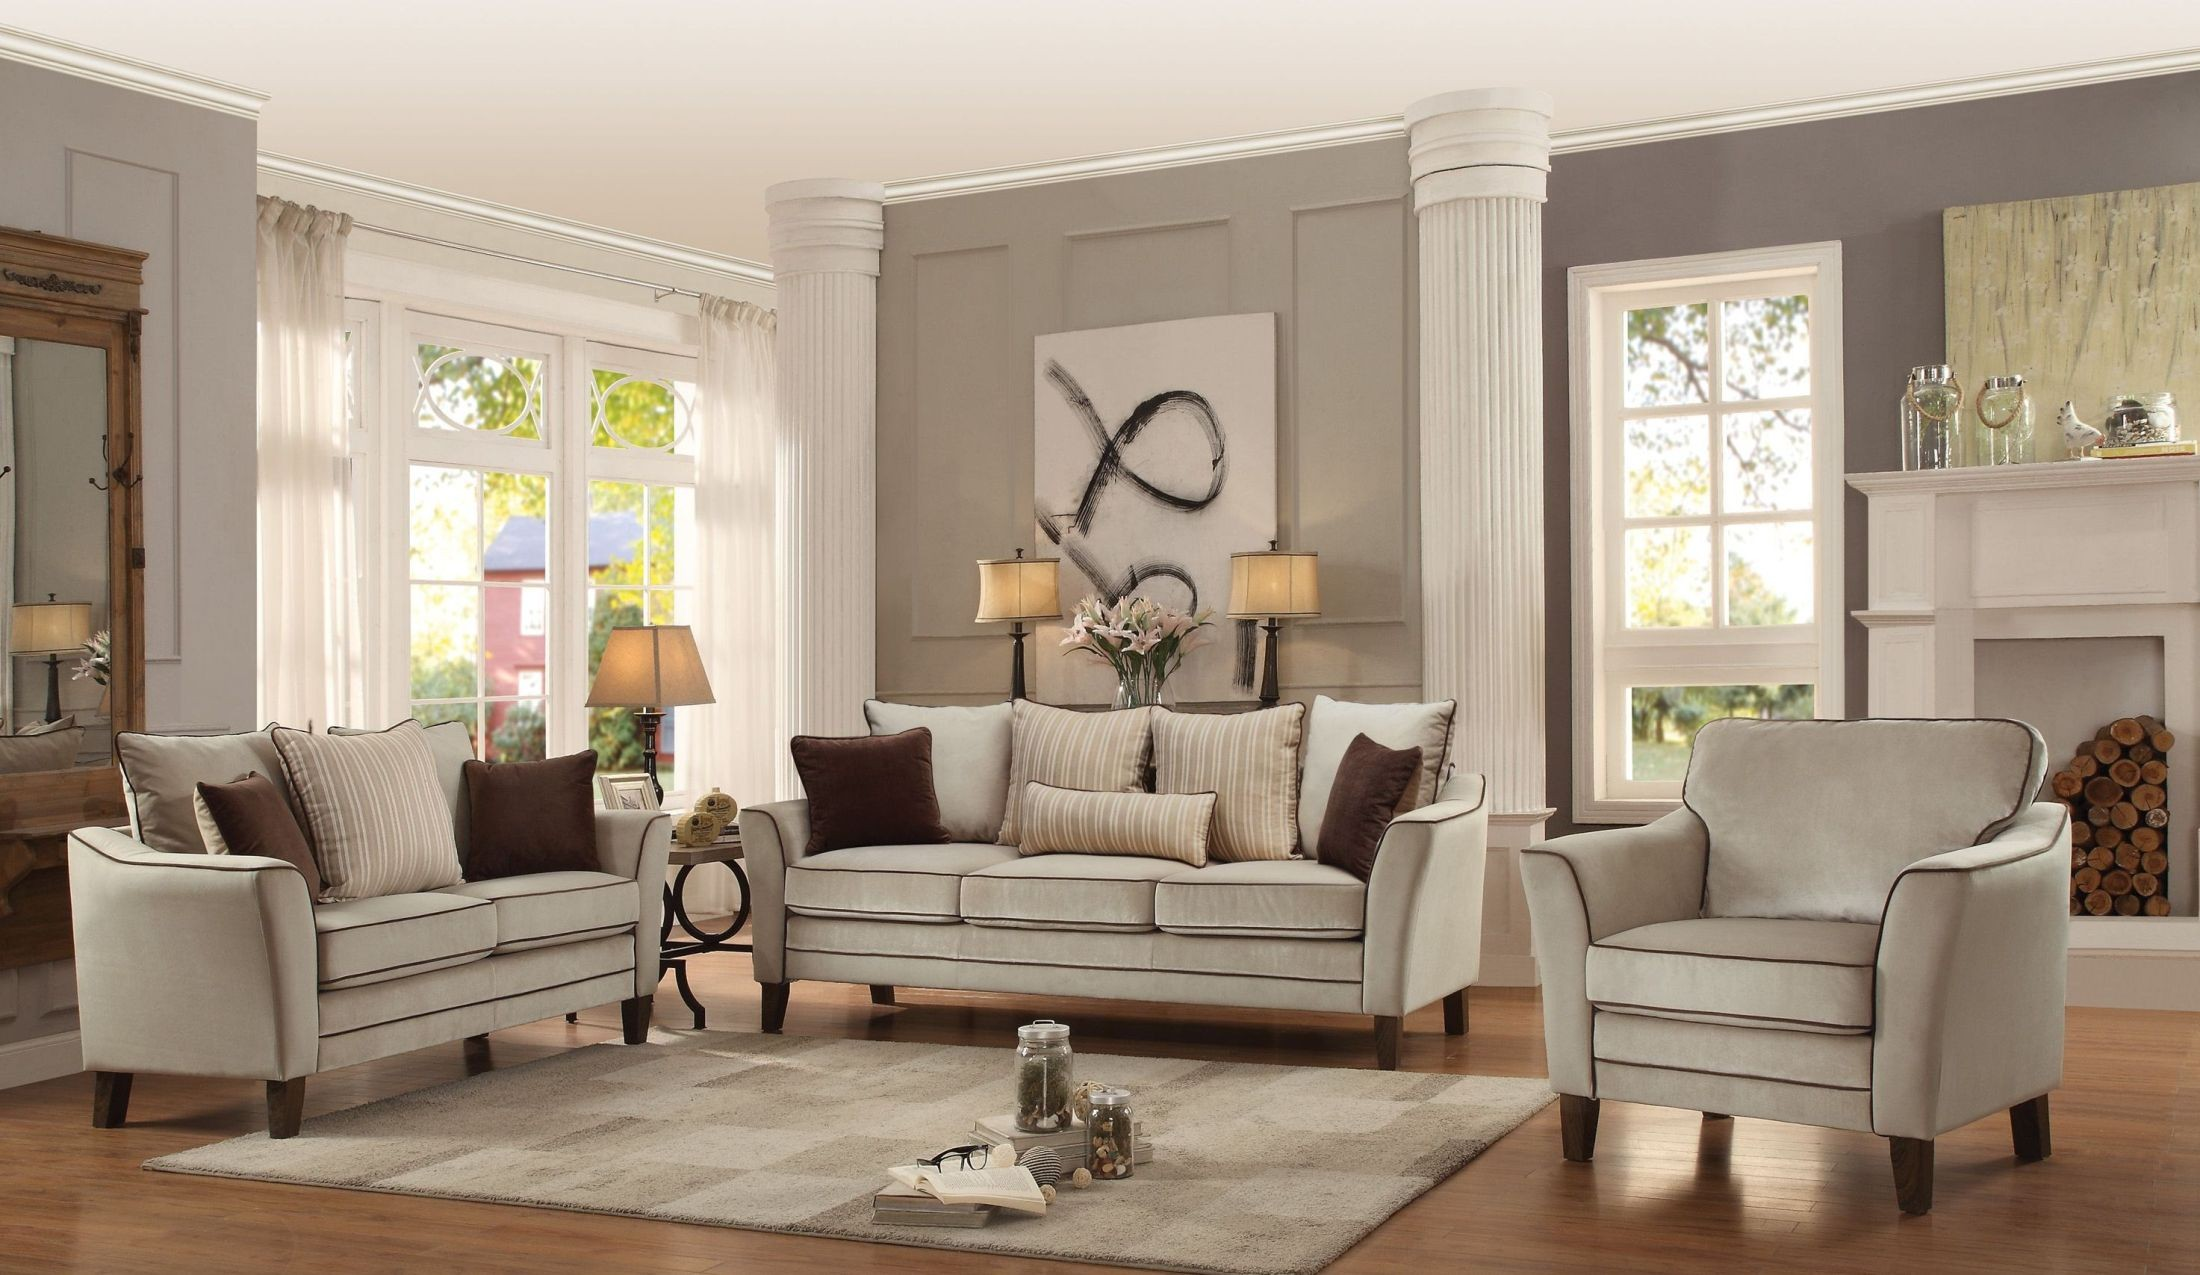 Cream Living Room Furniture : Ouray Cream Living Room Set from Homelegance  Coleman ...